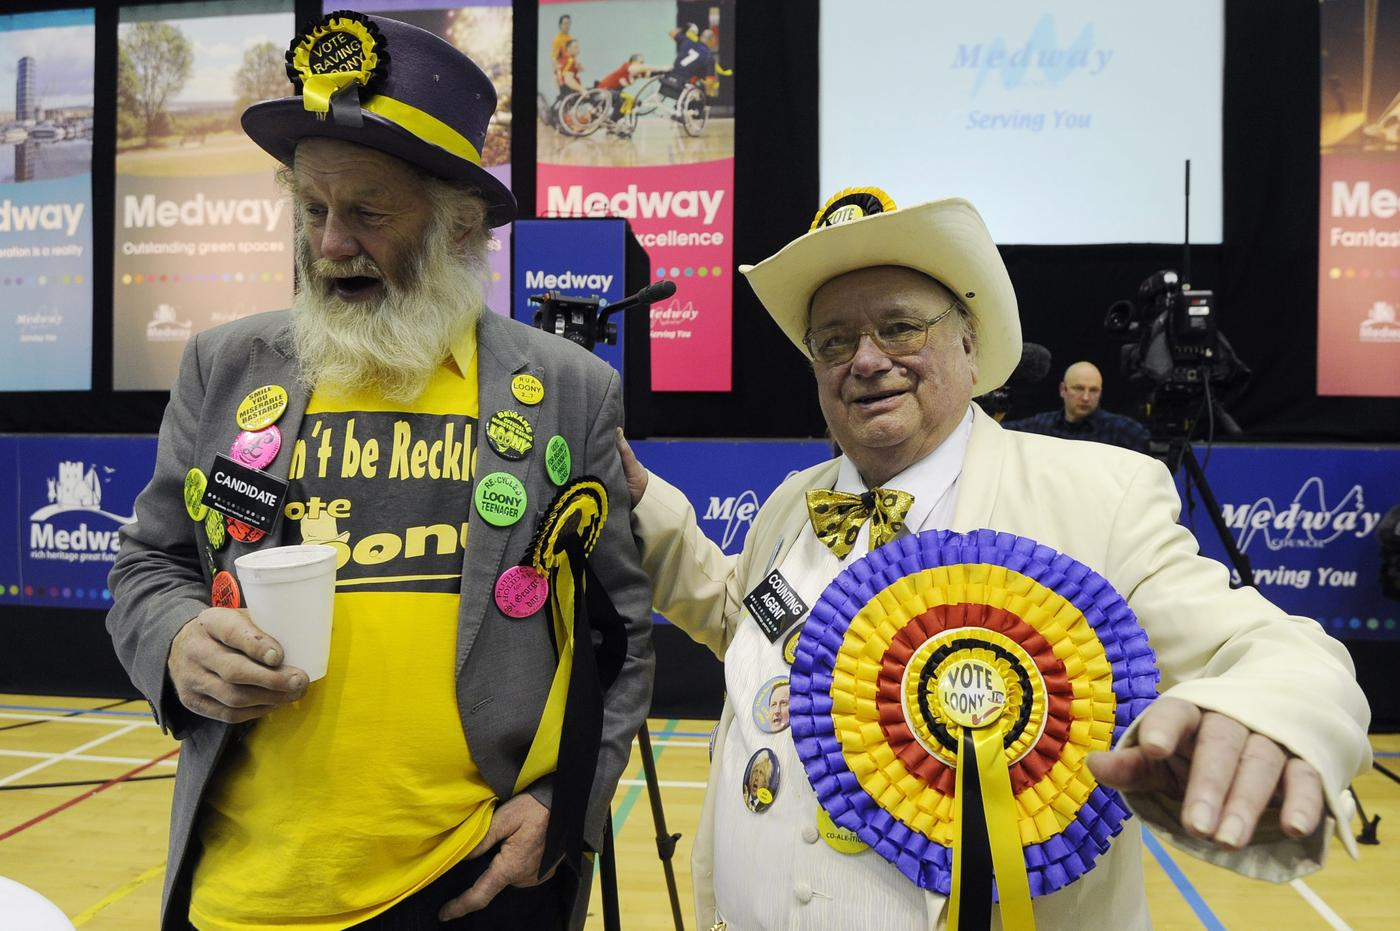 9 oddest political parties and candidates in the General Election